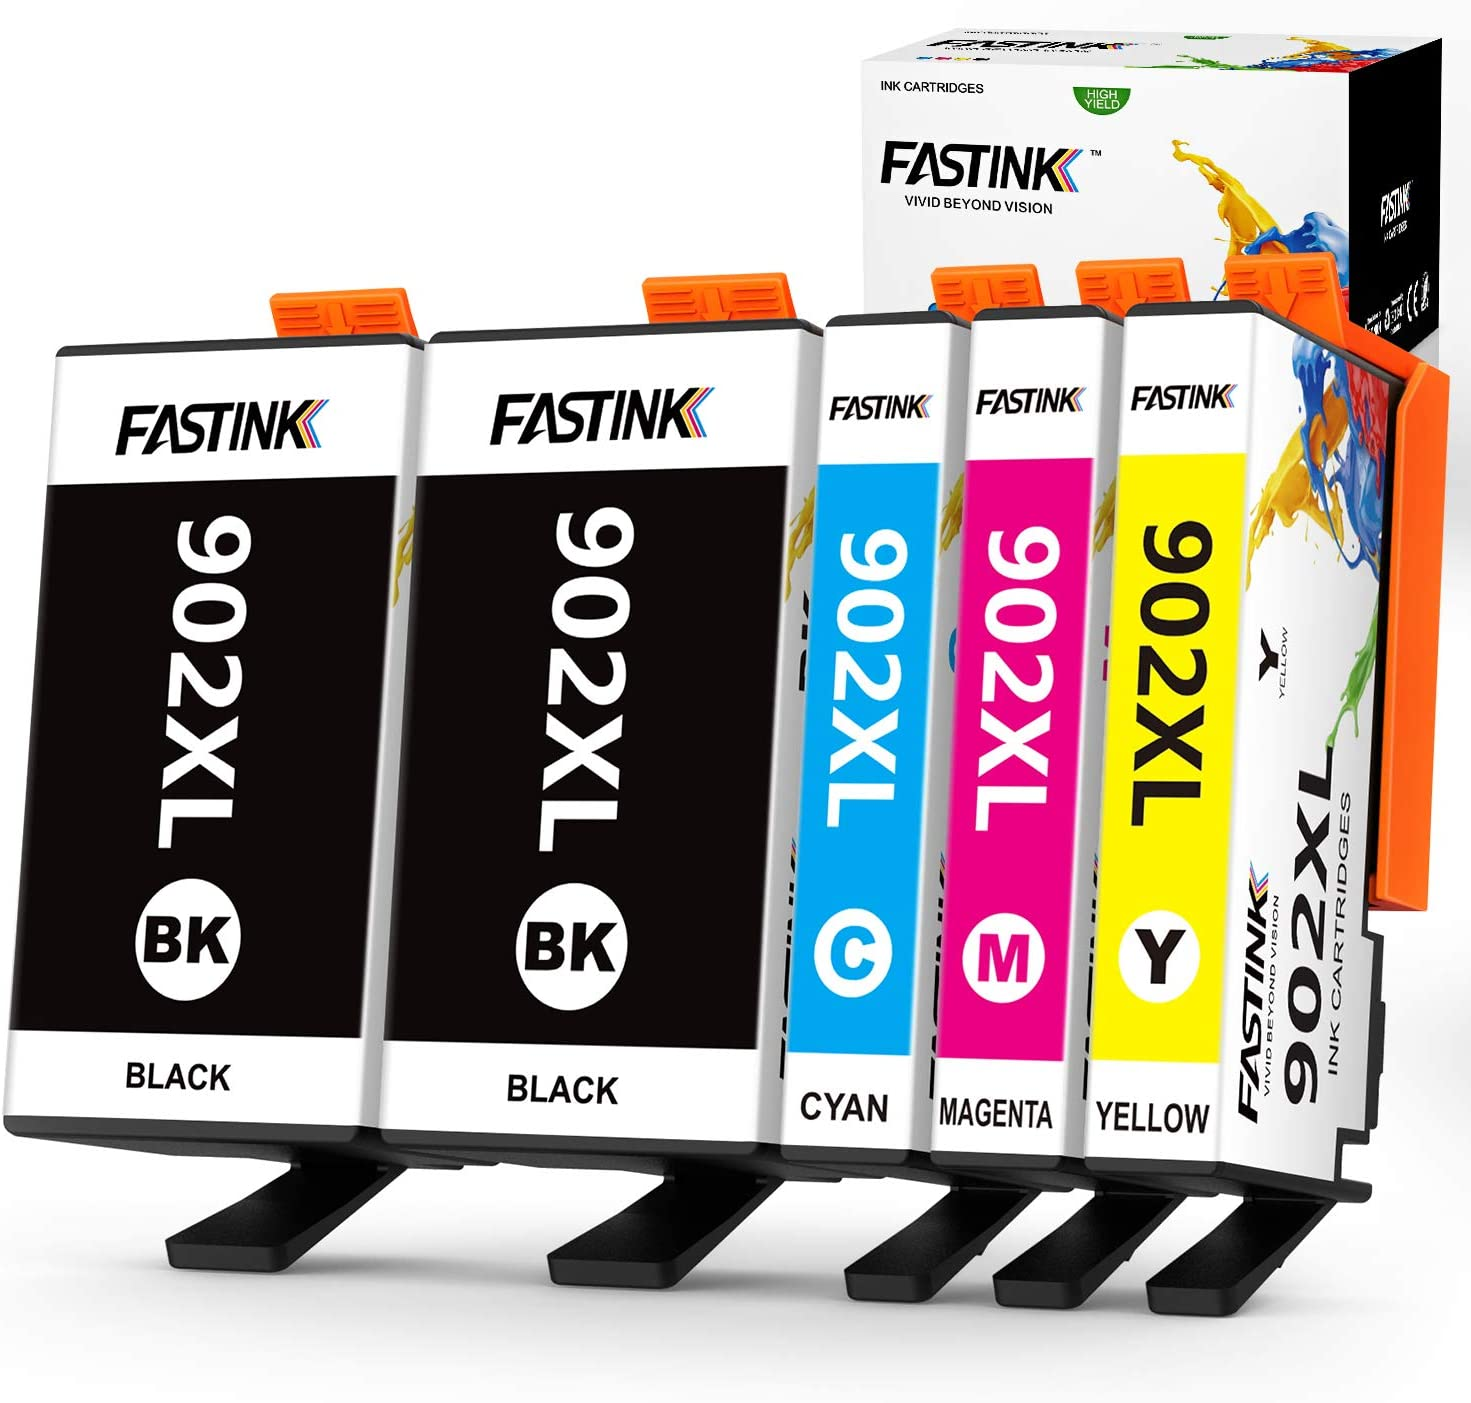 FASTINK Compatible HP Ink Cartridges Replacement for HP 902 XL 902XL with Upgraded Chips for OfficeJet Pro 6954 6960 6962 6968 6978 Printers,5 Packs, (2 Black, 1 Cyan, 1 megenta, 1 Yellow)